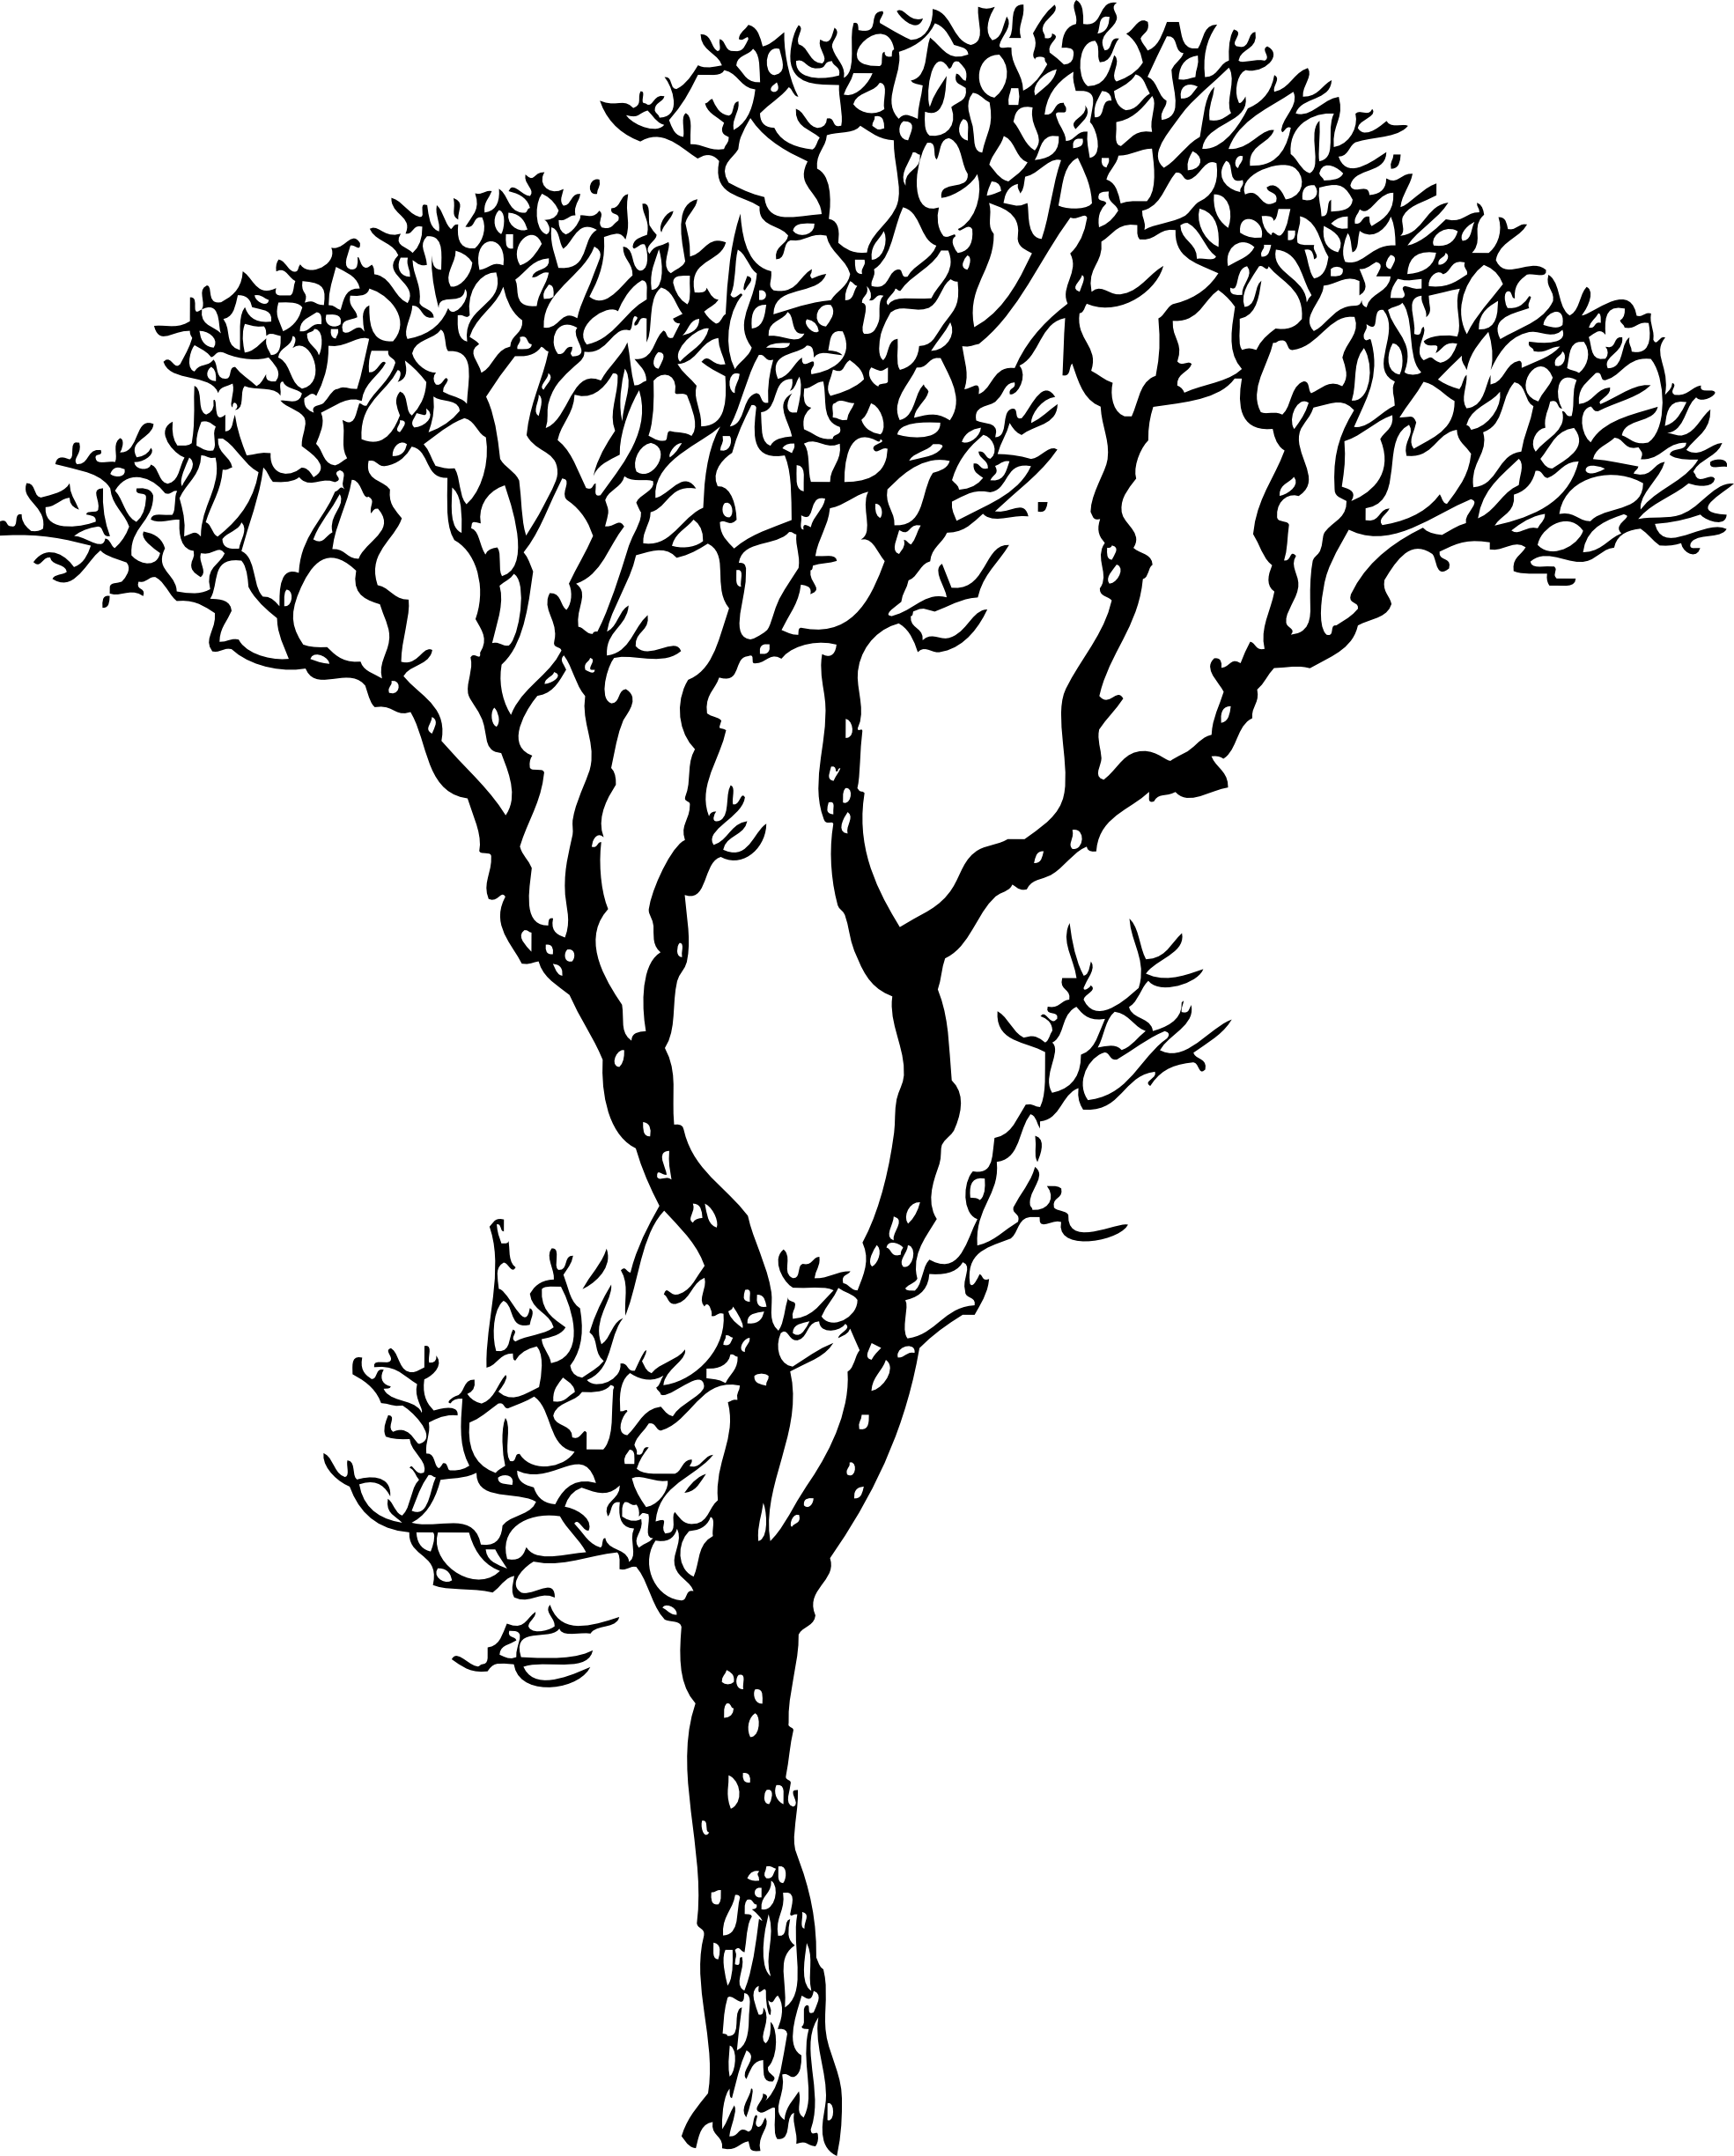 Bare tree black and white clipart svg black and white Bare Tree Black White Line Art Coloring Book Colouring Letters ... svg black and white